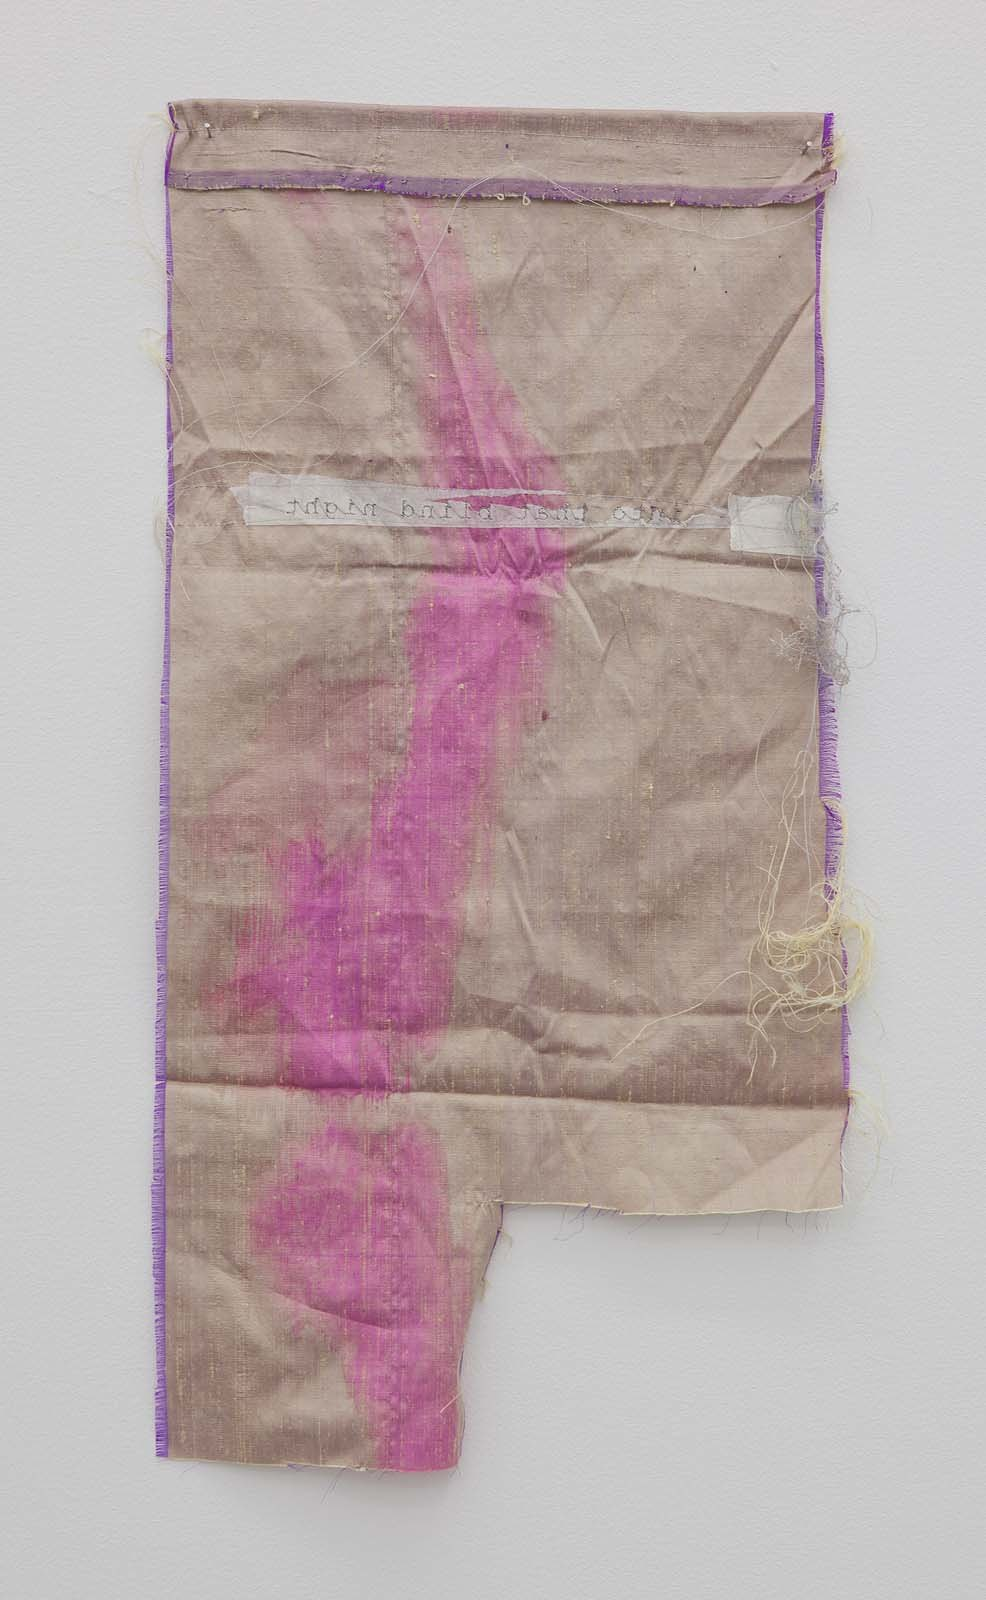 Don't go gentle, 2010,embroidery on various textiles